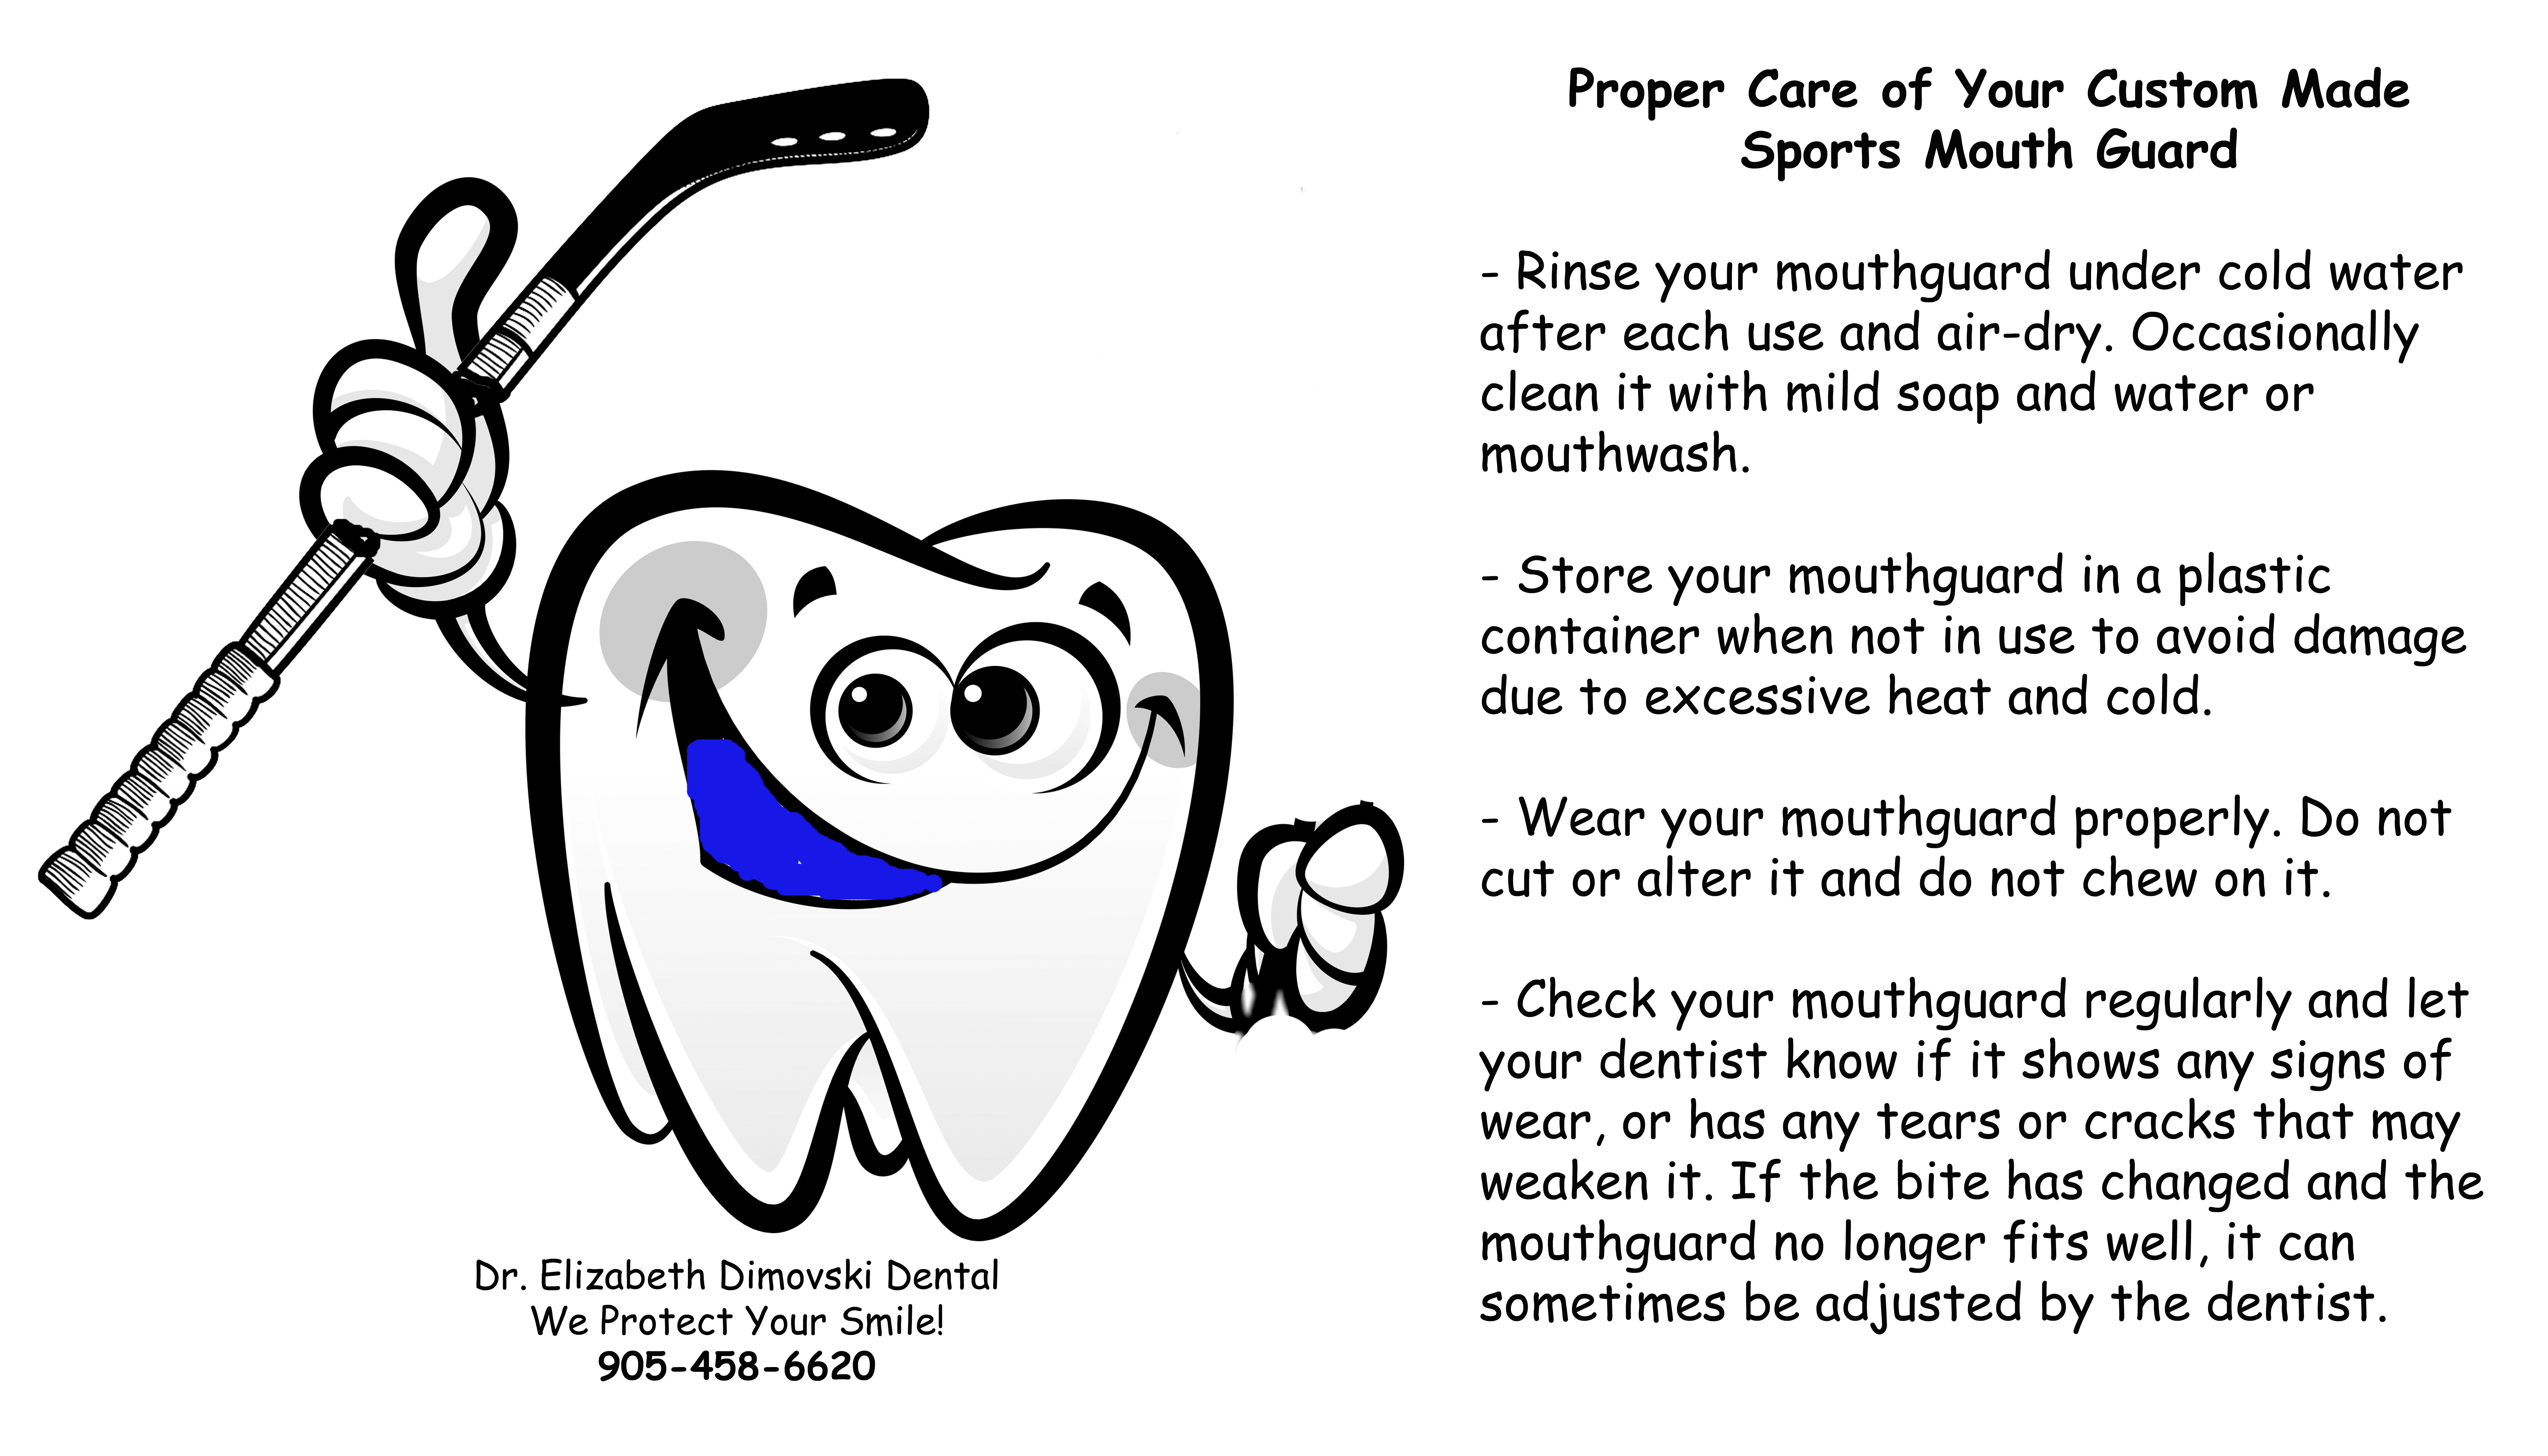 Cleaning and Proper Care of Your Sports Mouth Guard | Dr ...